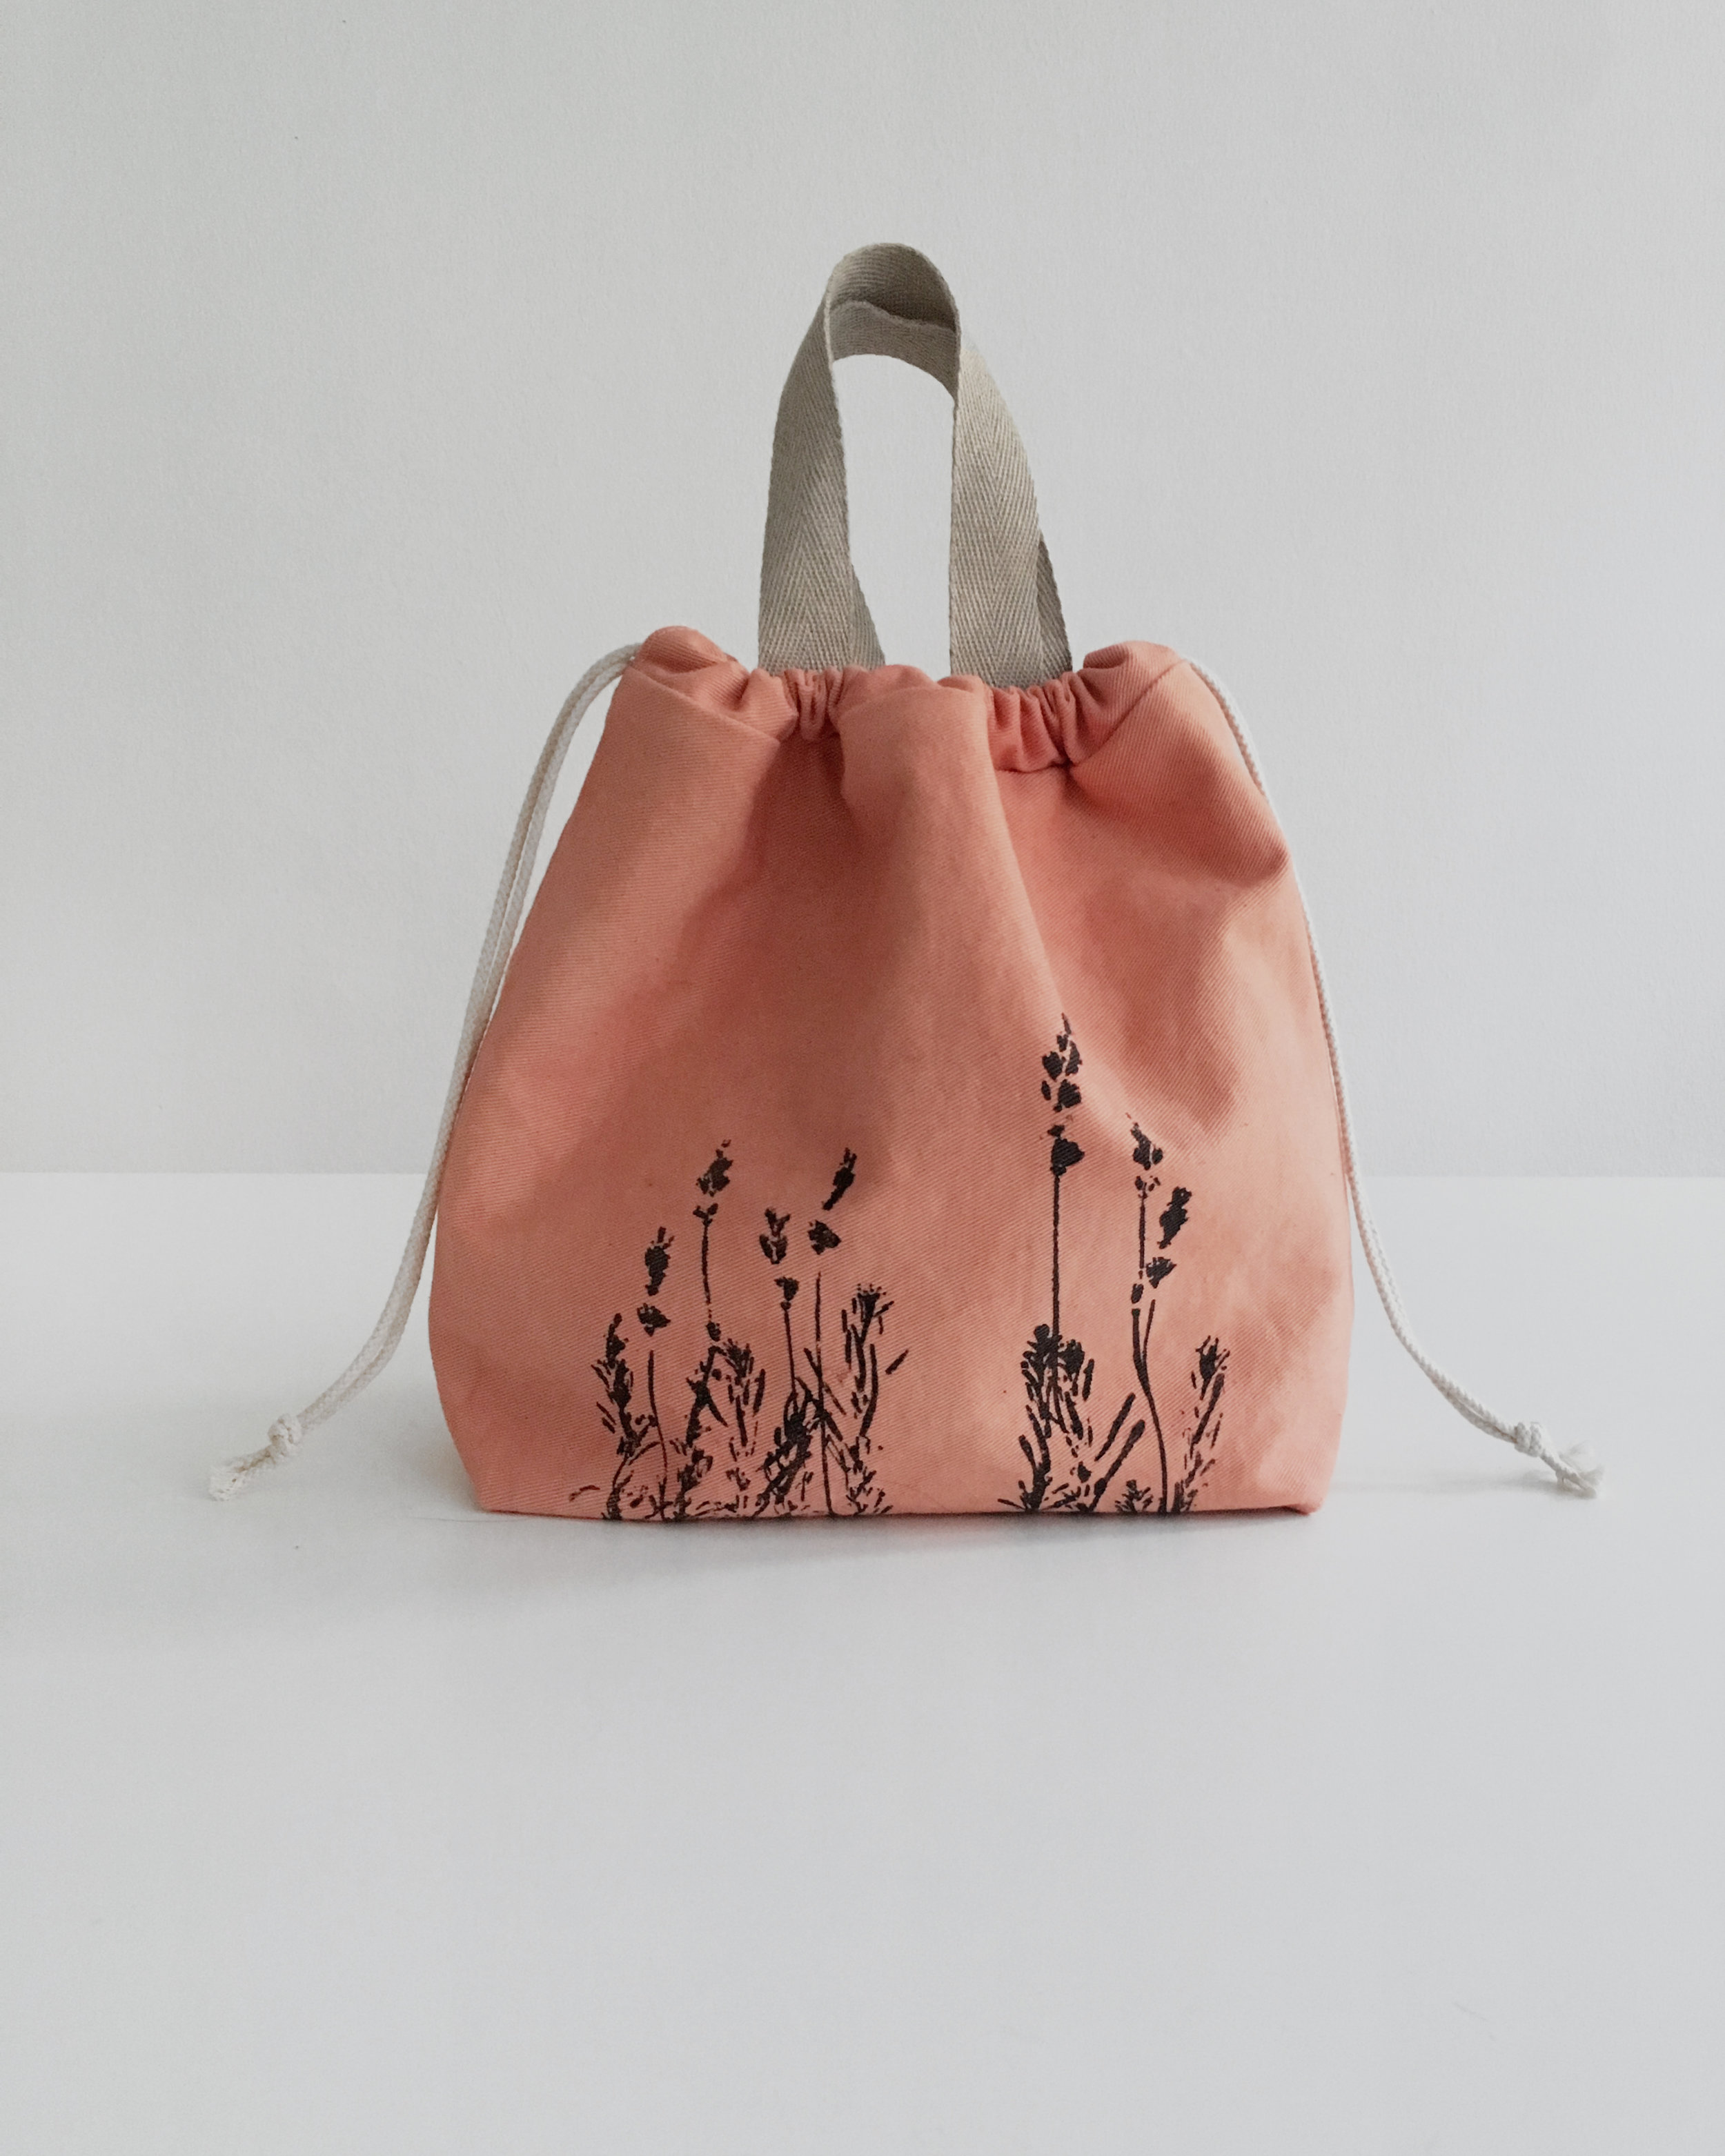 New upgraded design of project bags for knitters has been published